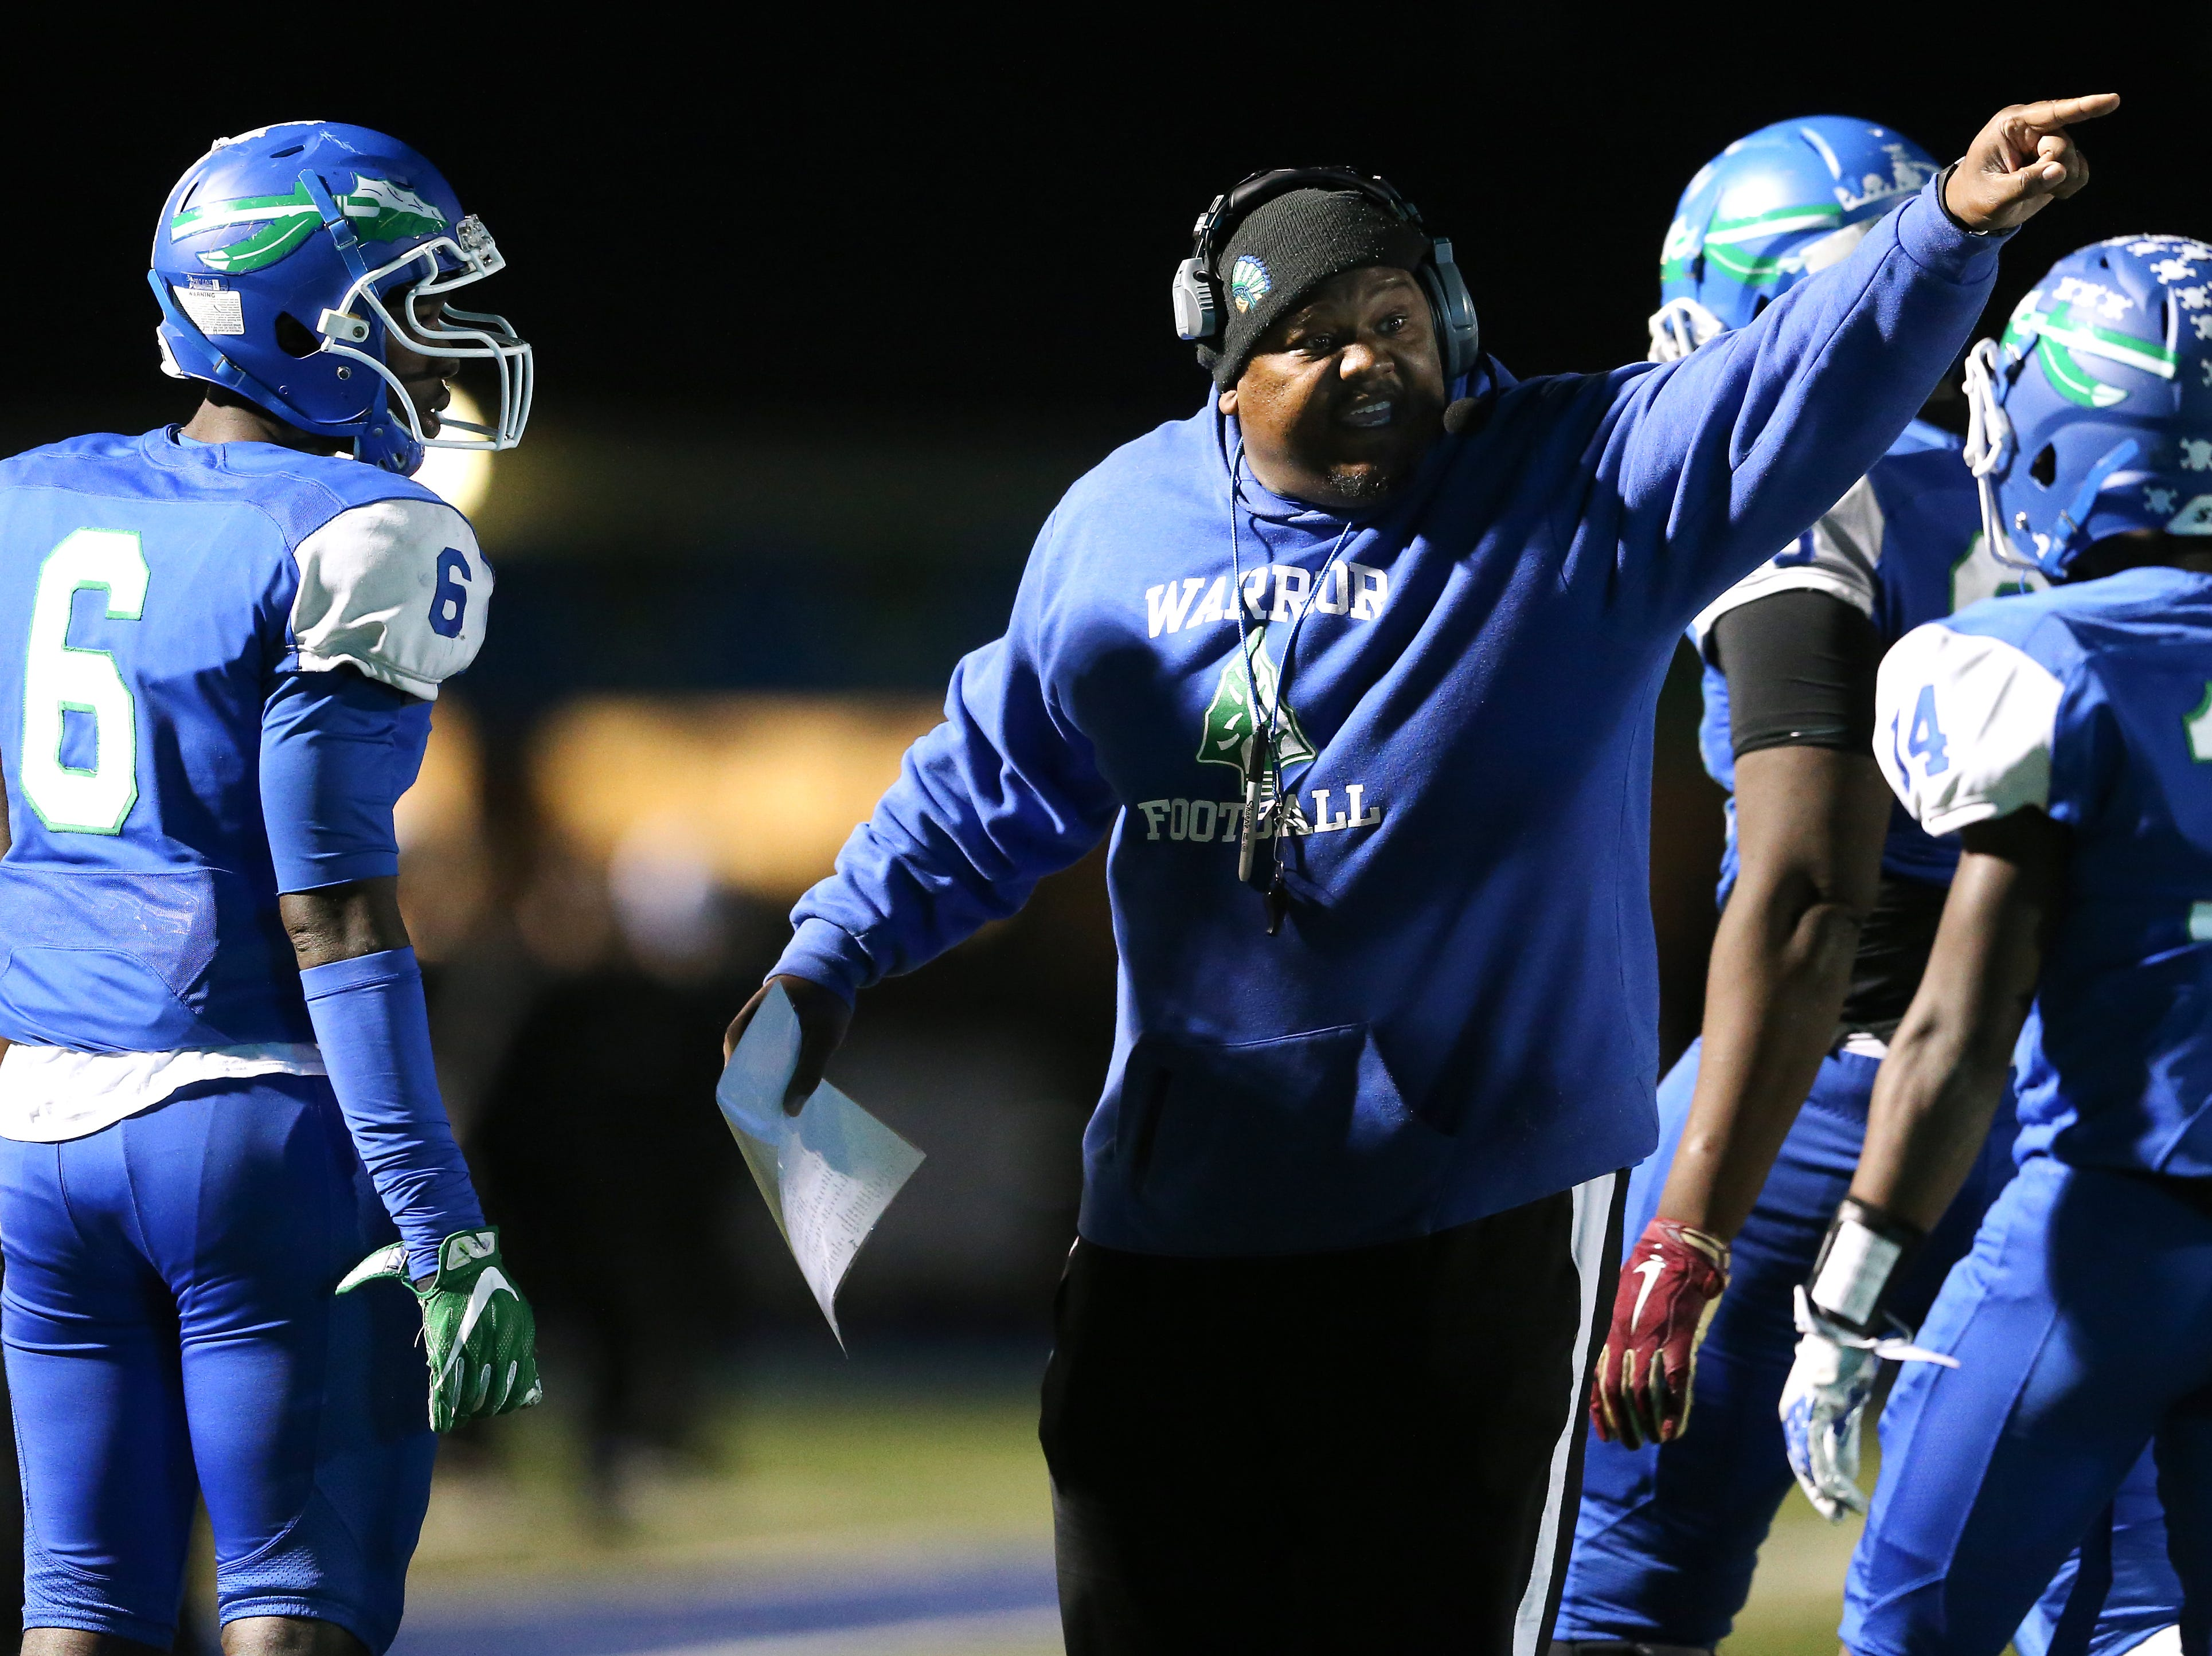 Winton Woods Warriors defensive line/linebackers coach Art Wilson instructs the team in the first quarter during a high school football game between St. Francis de Sales and Winton Woods, Friday, Oct. 19, 2018, at Winton Woods High School in Forest Park, Ohio.